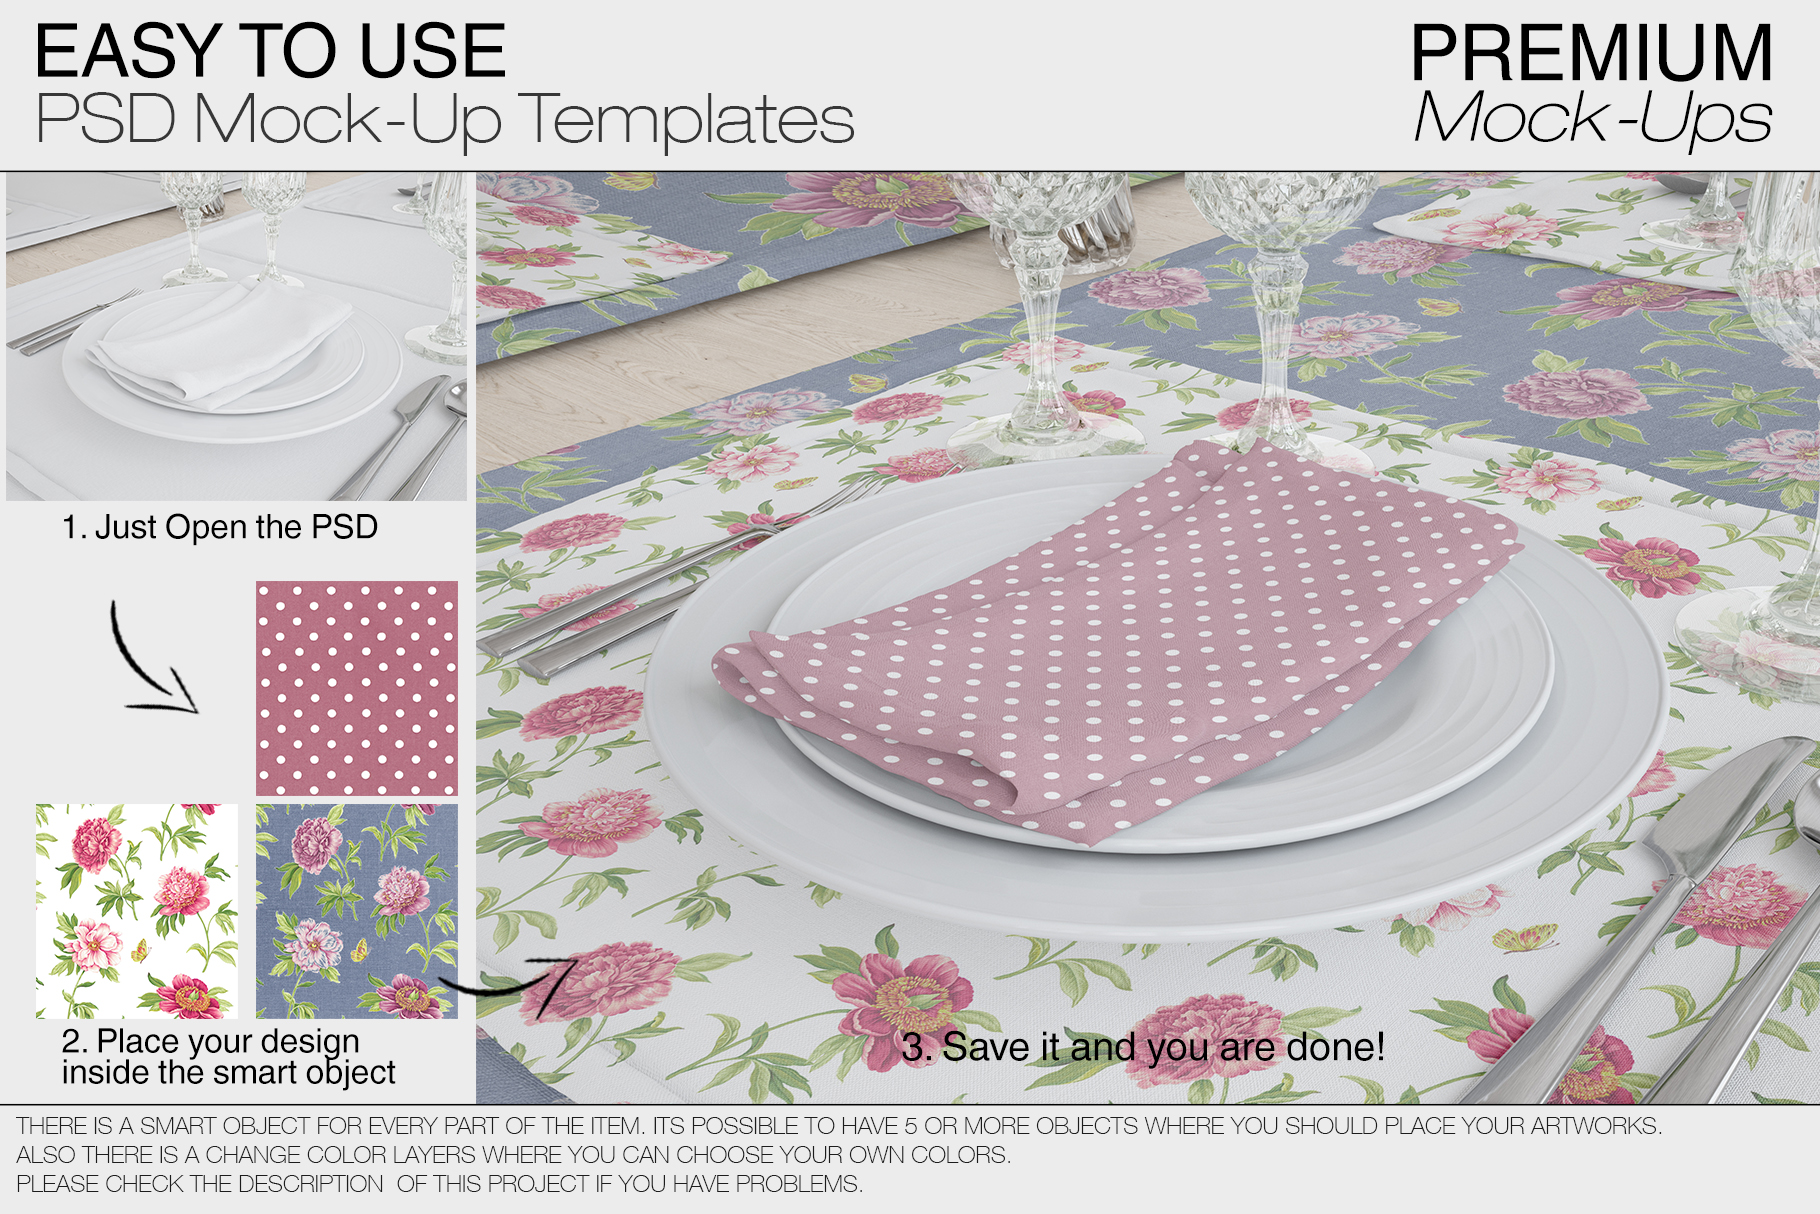 Tablecloth, Runner, Napkins & Plates example image 4